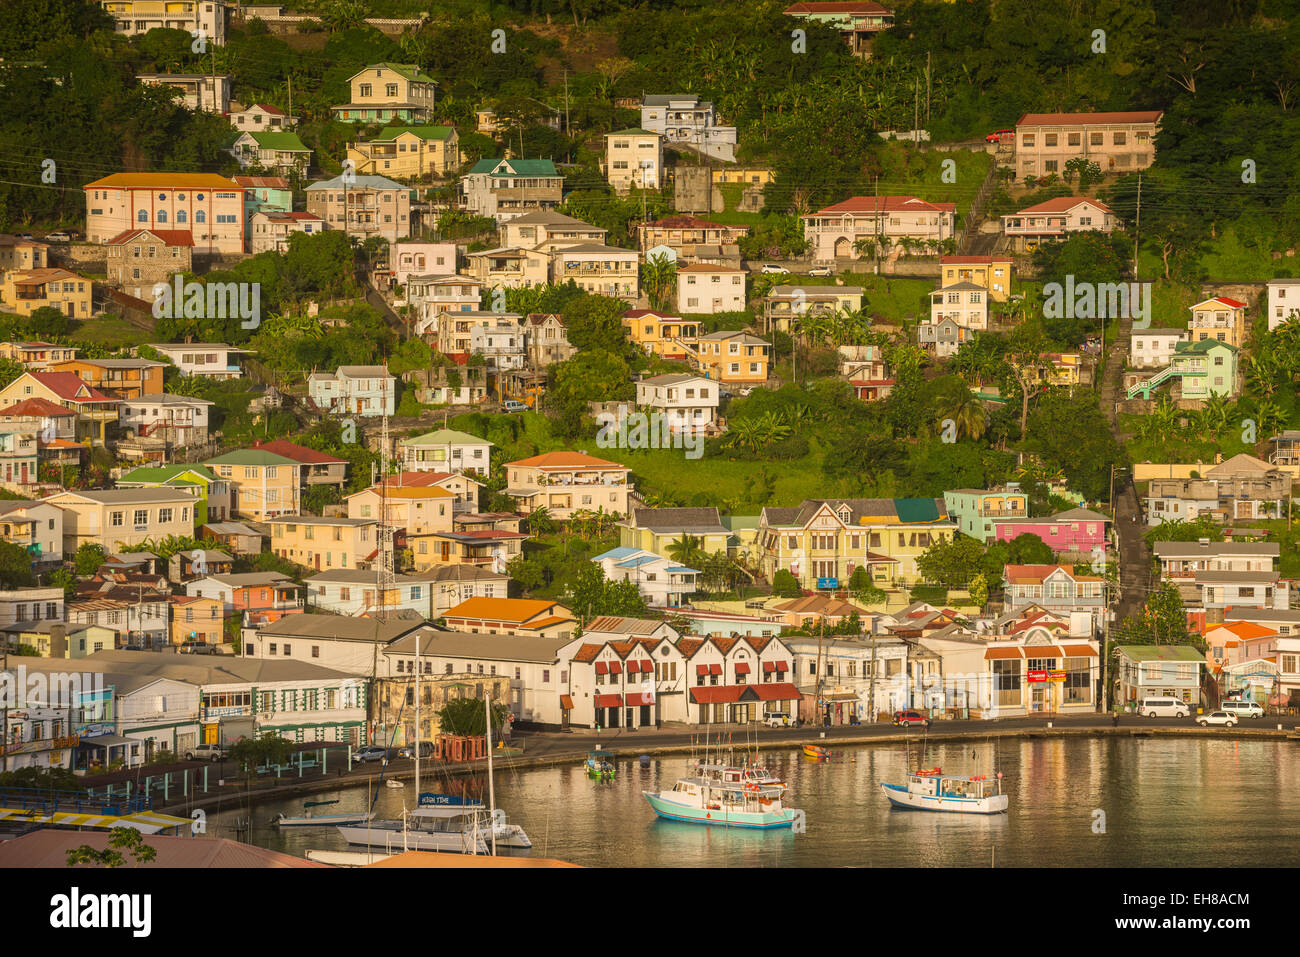 View over St. Georges, capital of Grenada, Windward Islands, West Indies, Caribbean, Central America - Stock Image